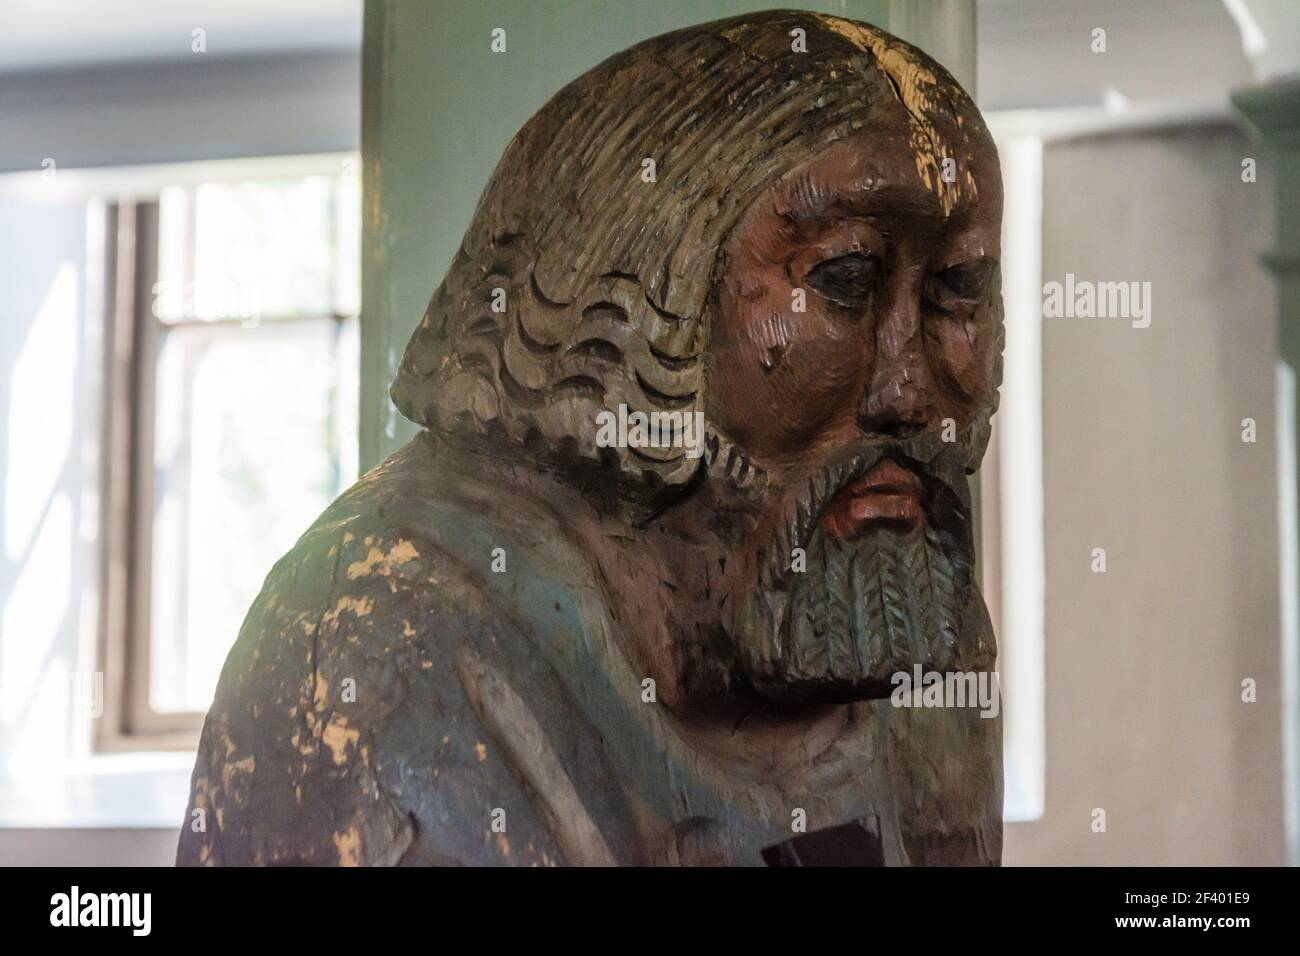 Old wooden pauper statue called Bartimeus of medieval stone church of Hauho Finland Stock Photo